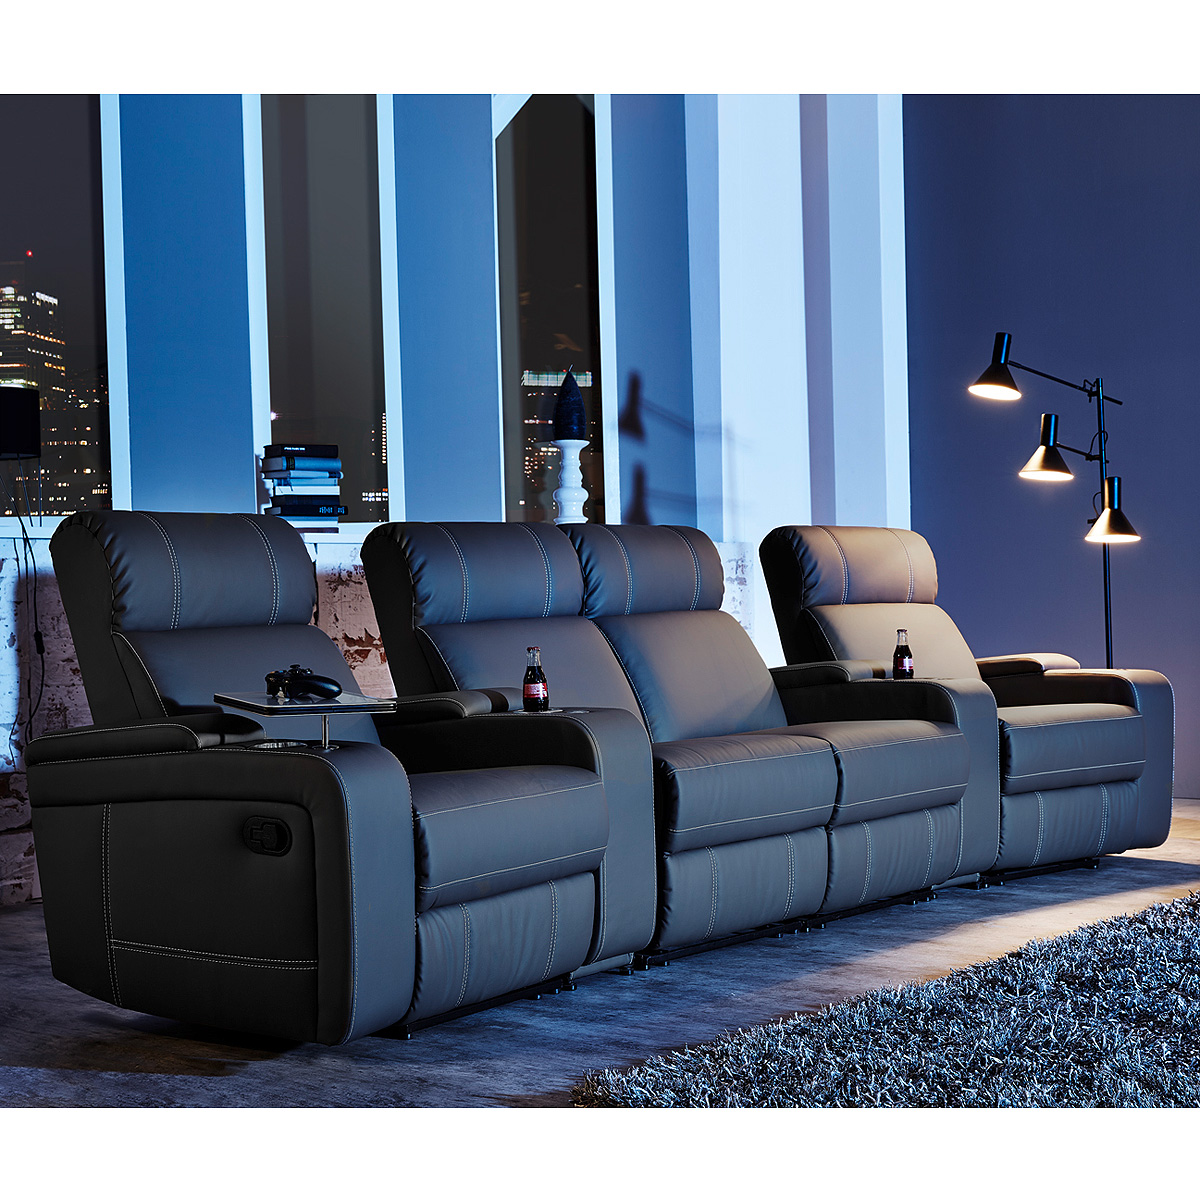 Kinosessel Ebay Cinema Sessel Hollywood 4er Kinosessel Kinosofa Sofa